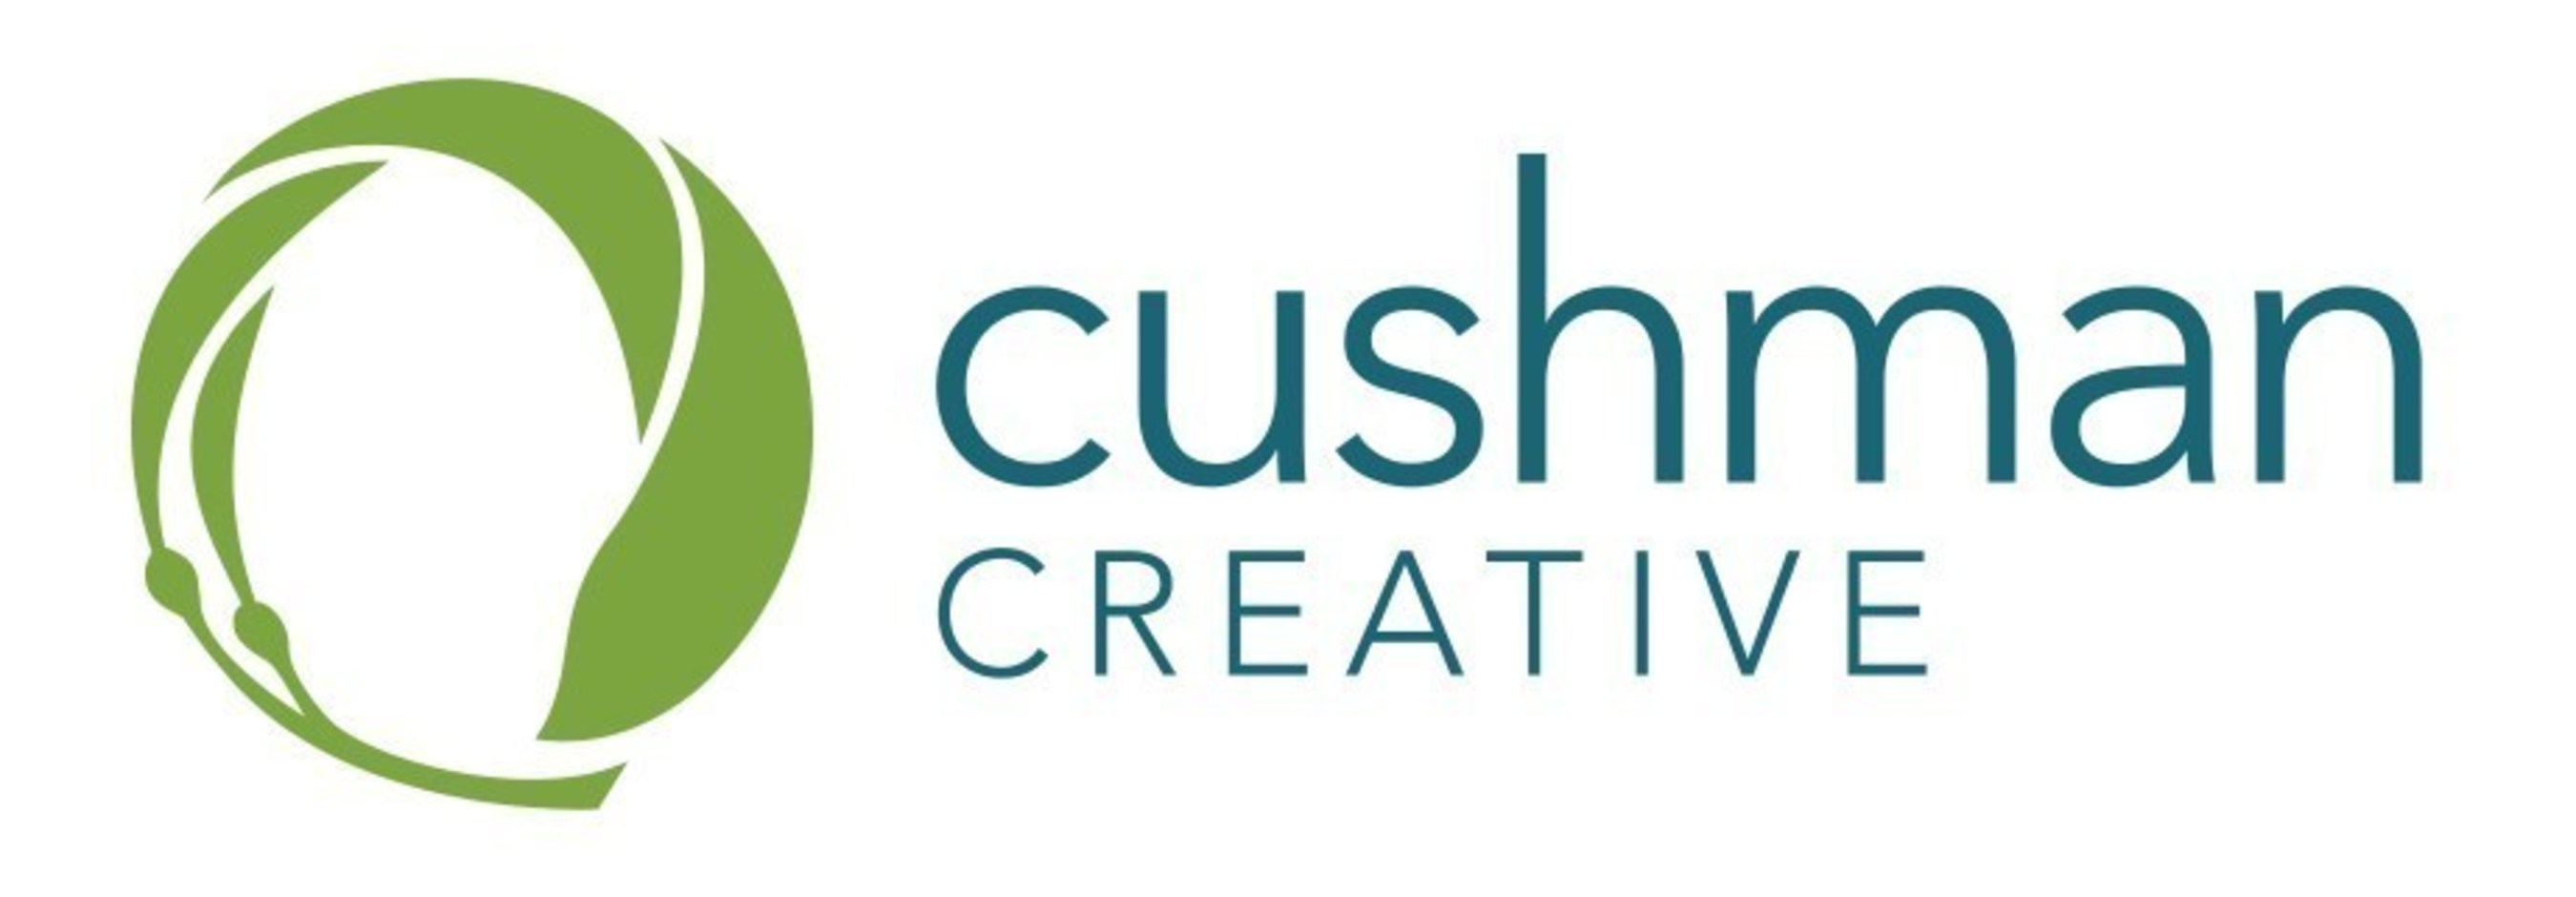 Cushman Creative Receives Top Honors from Hermes Creative Awards for